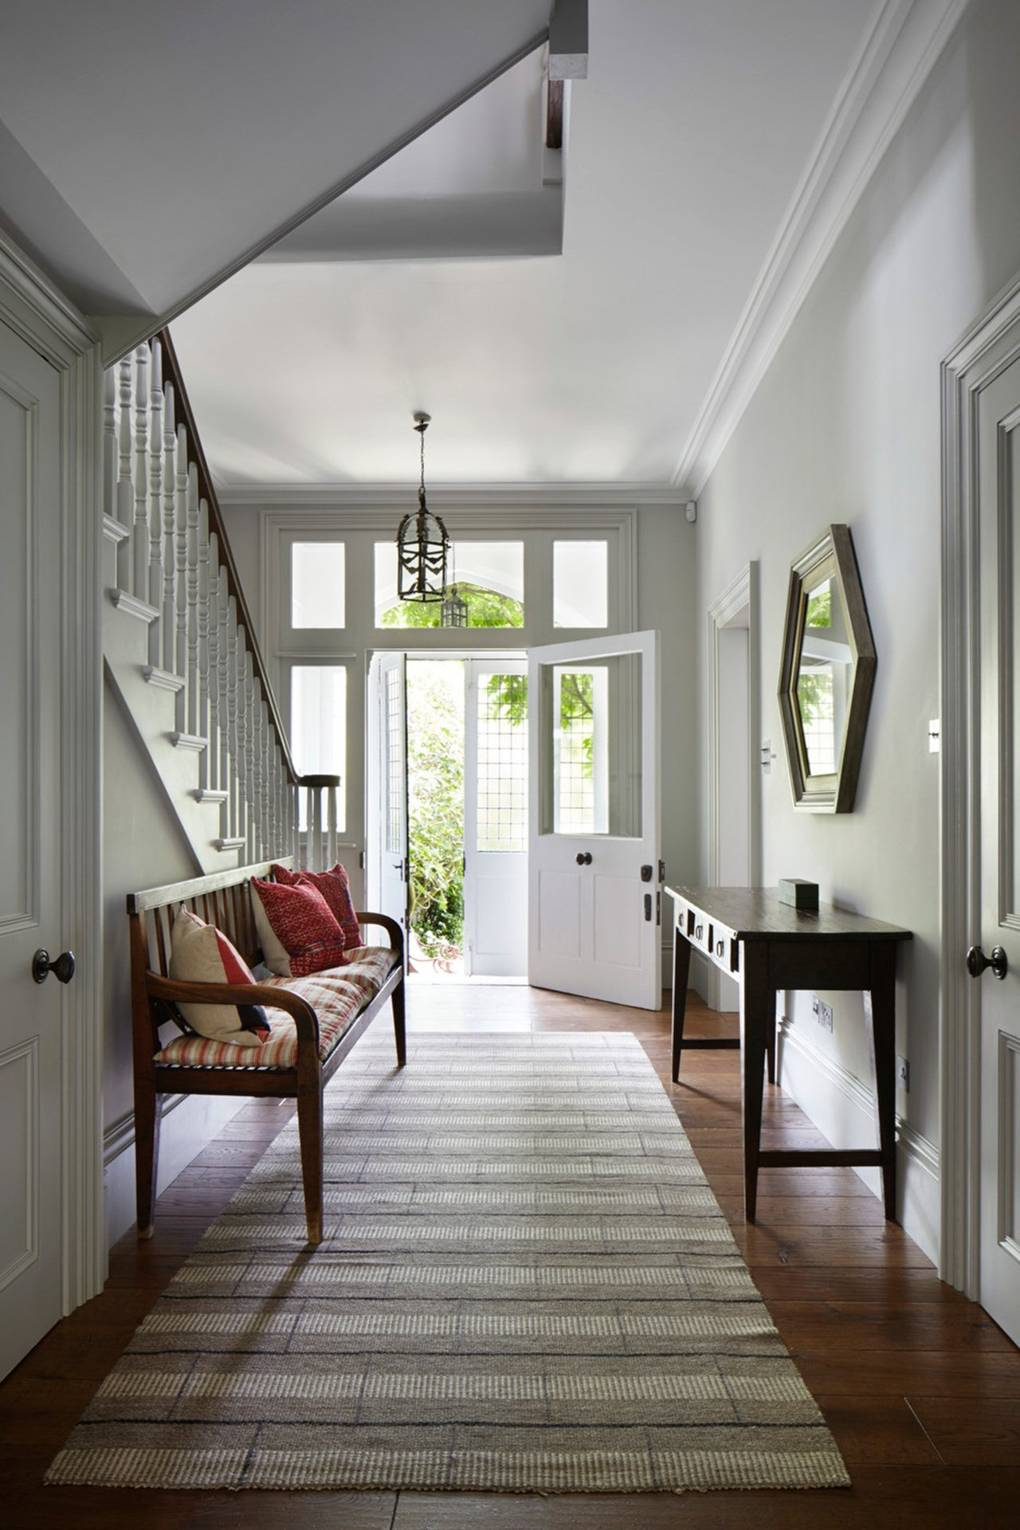 Forum on this topic: TheLIST: How To Give Your Interiors a , thelist-how-to-give-your-interiors-a/